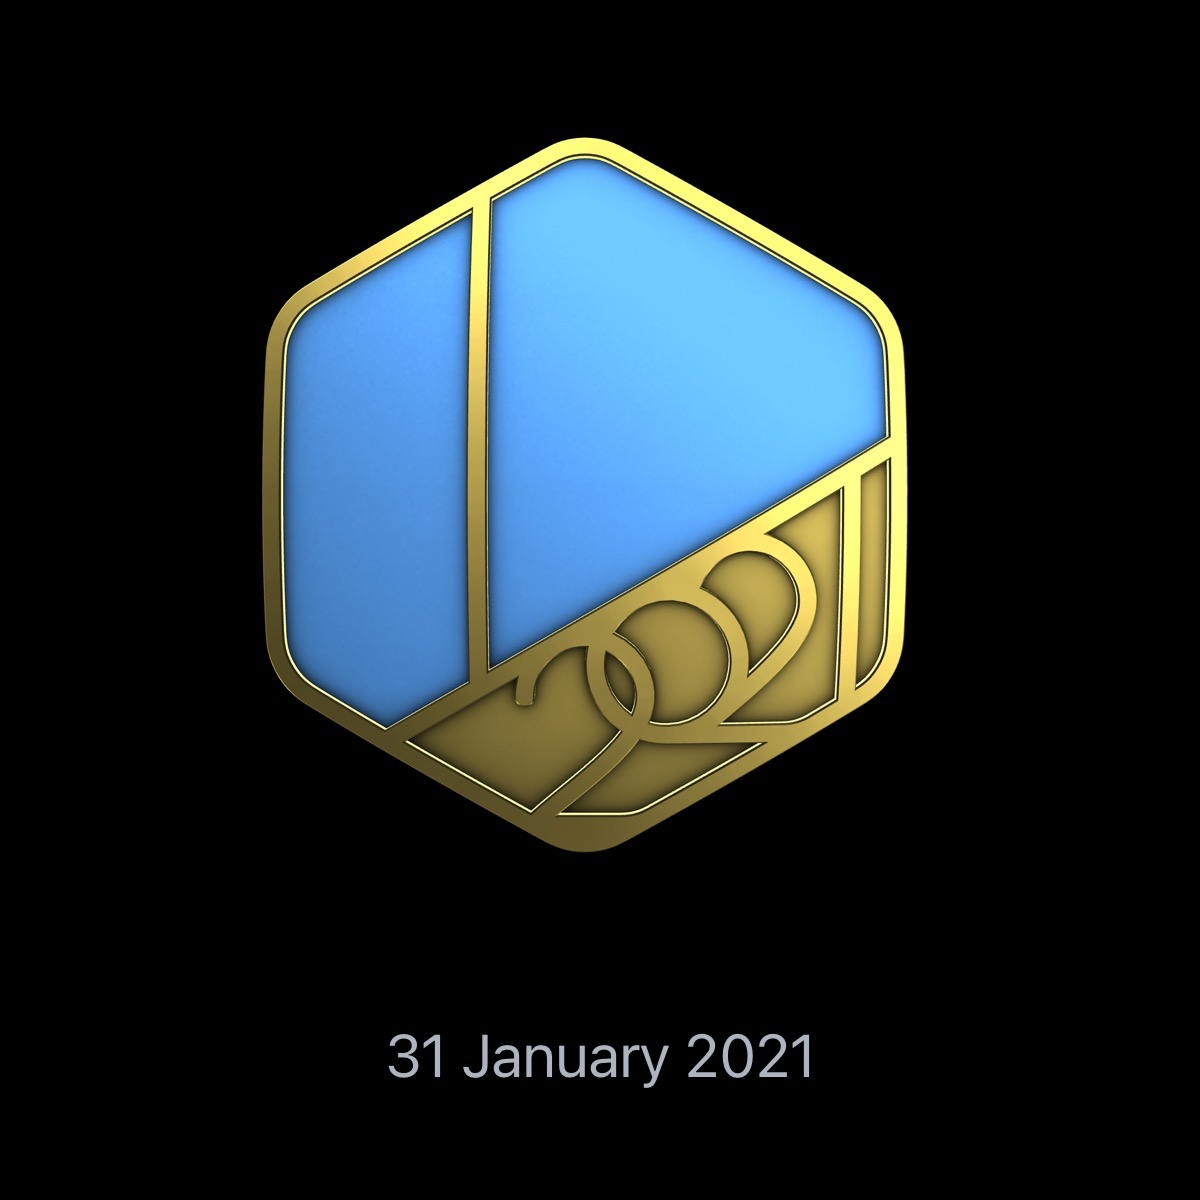 January 2021 Fitness Golden Medal